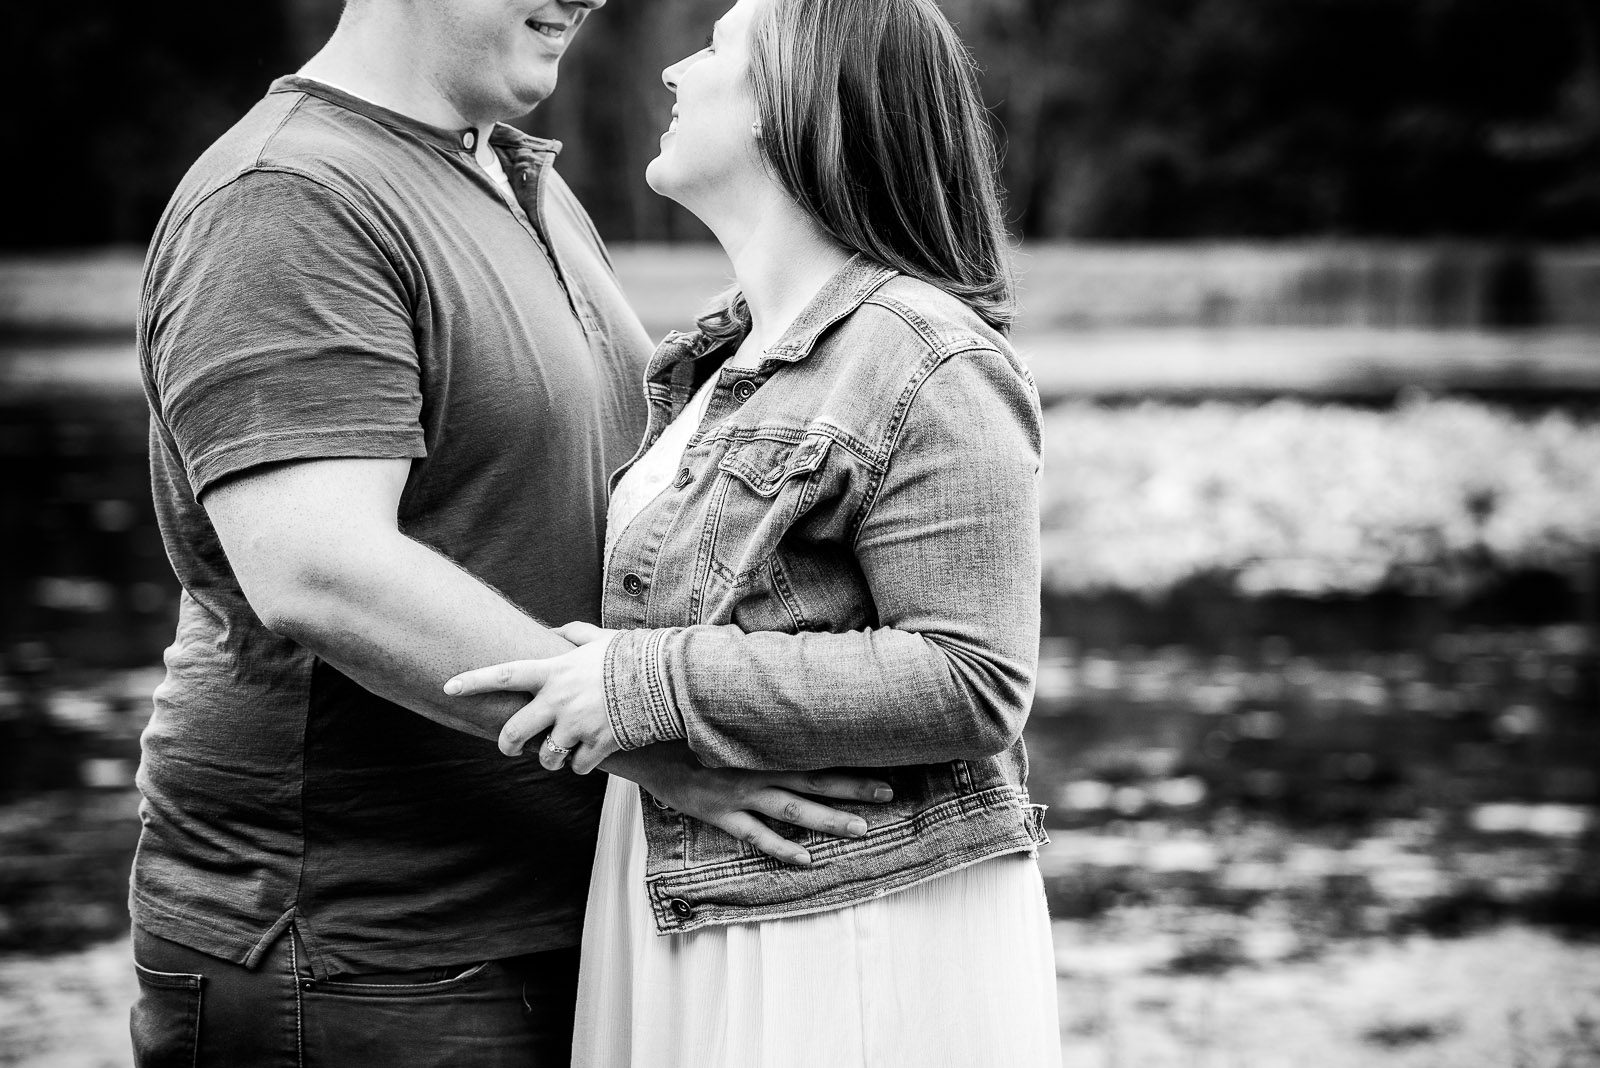 Eric_and_Christy_Photography_Blog_Karen_Nick-7